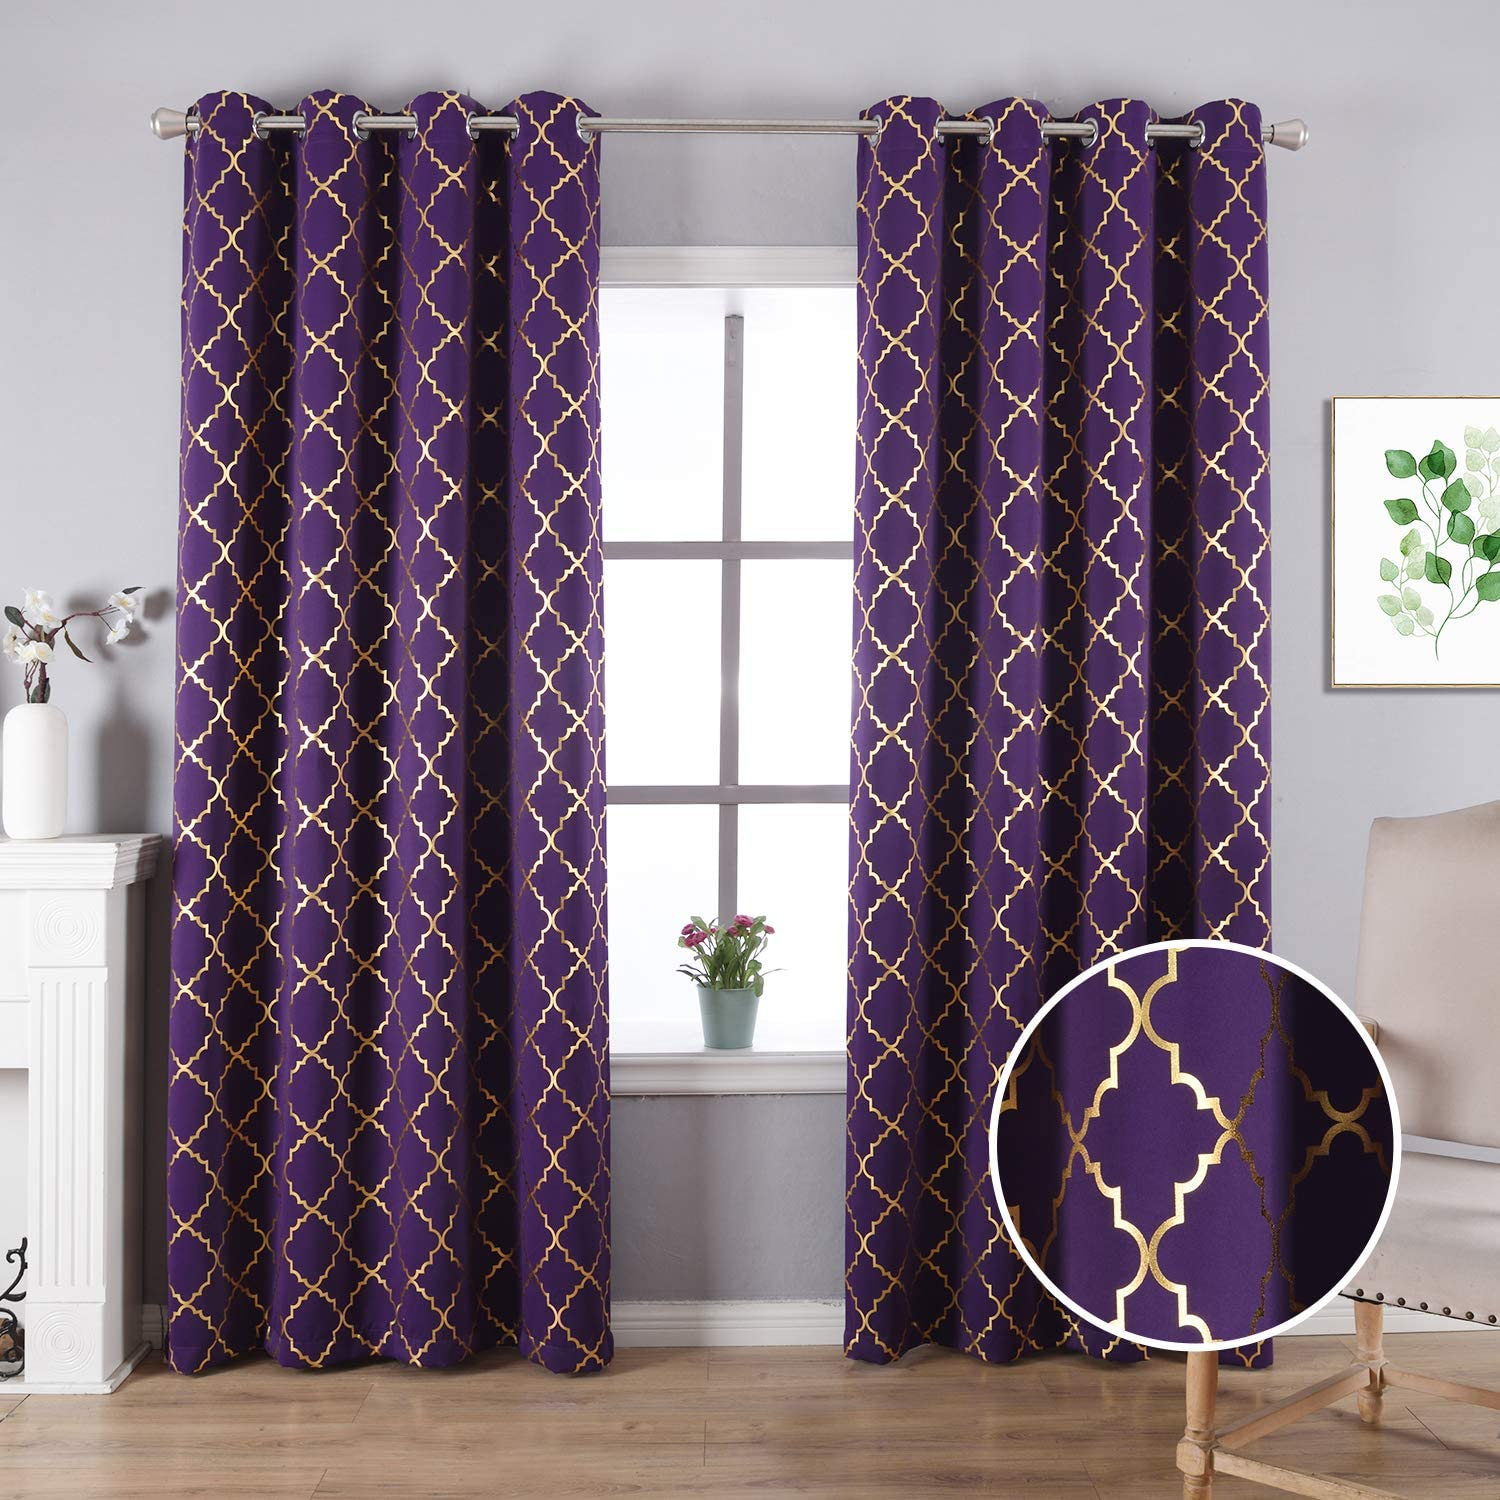 Anjee Blackout Curtains for Office with Foil Printed Geometric Pattern, Thermal Insulated Grommet Top Window Drapes 52 x 95 Inches, Purple